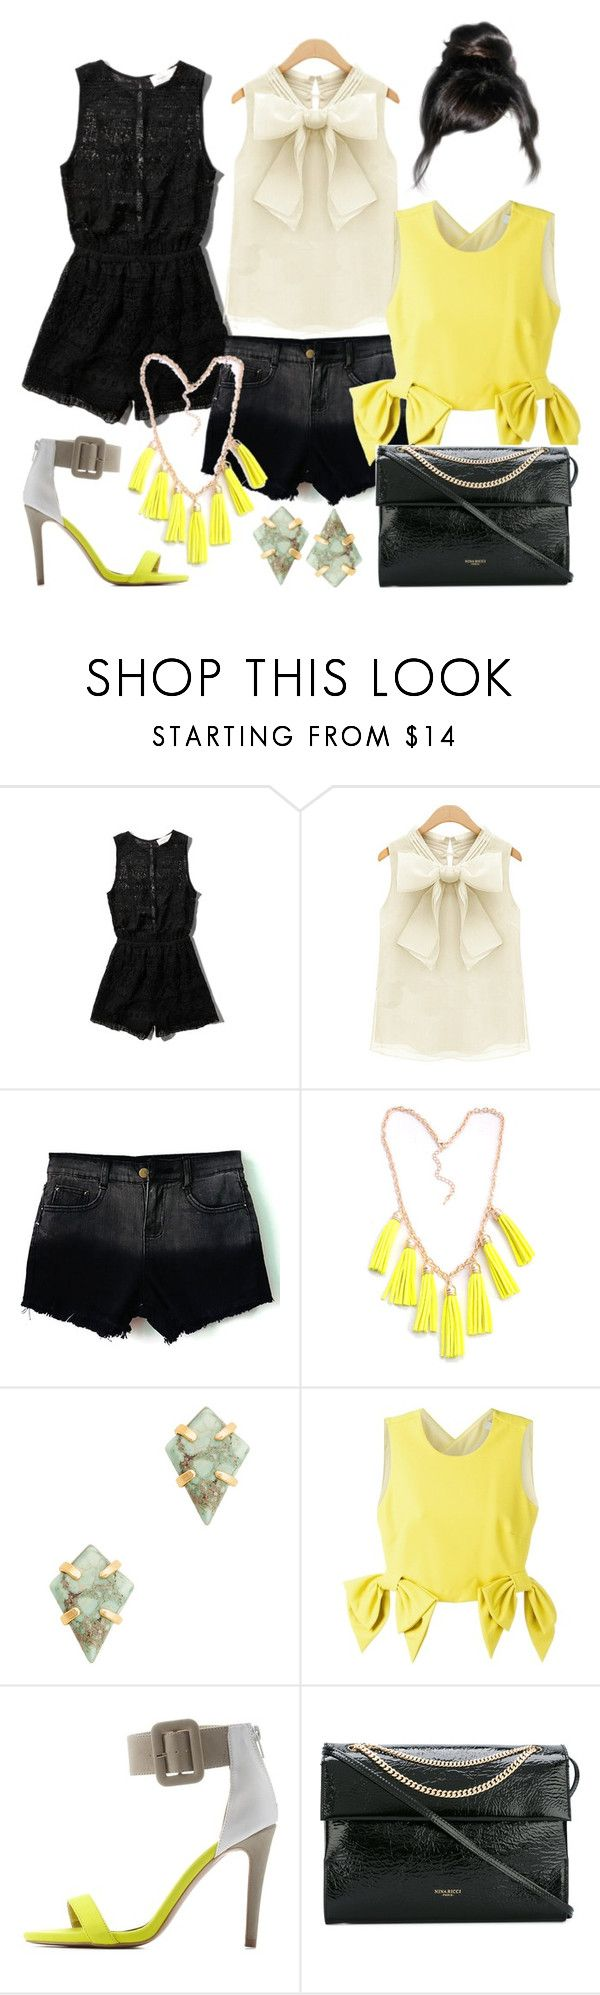 """""""black&yellow"""" by dodo85 on Polyvore featuring Abercrombie & Fitch, Sole Society, MSGM, Charlotte Russe and Nina Ricci"""